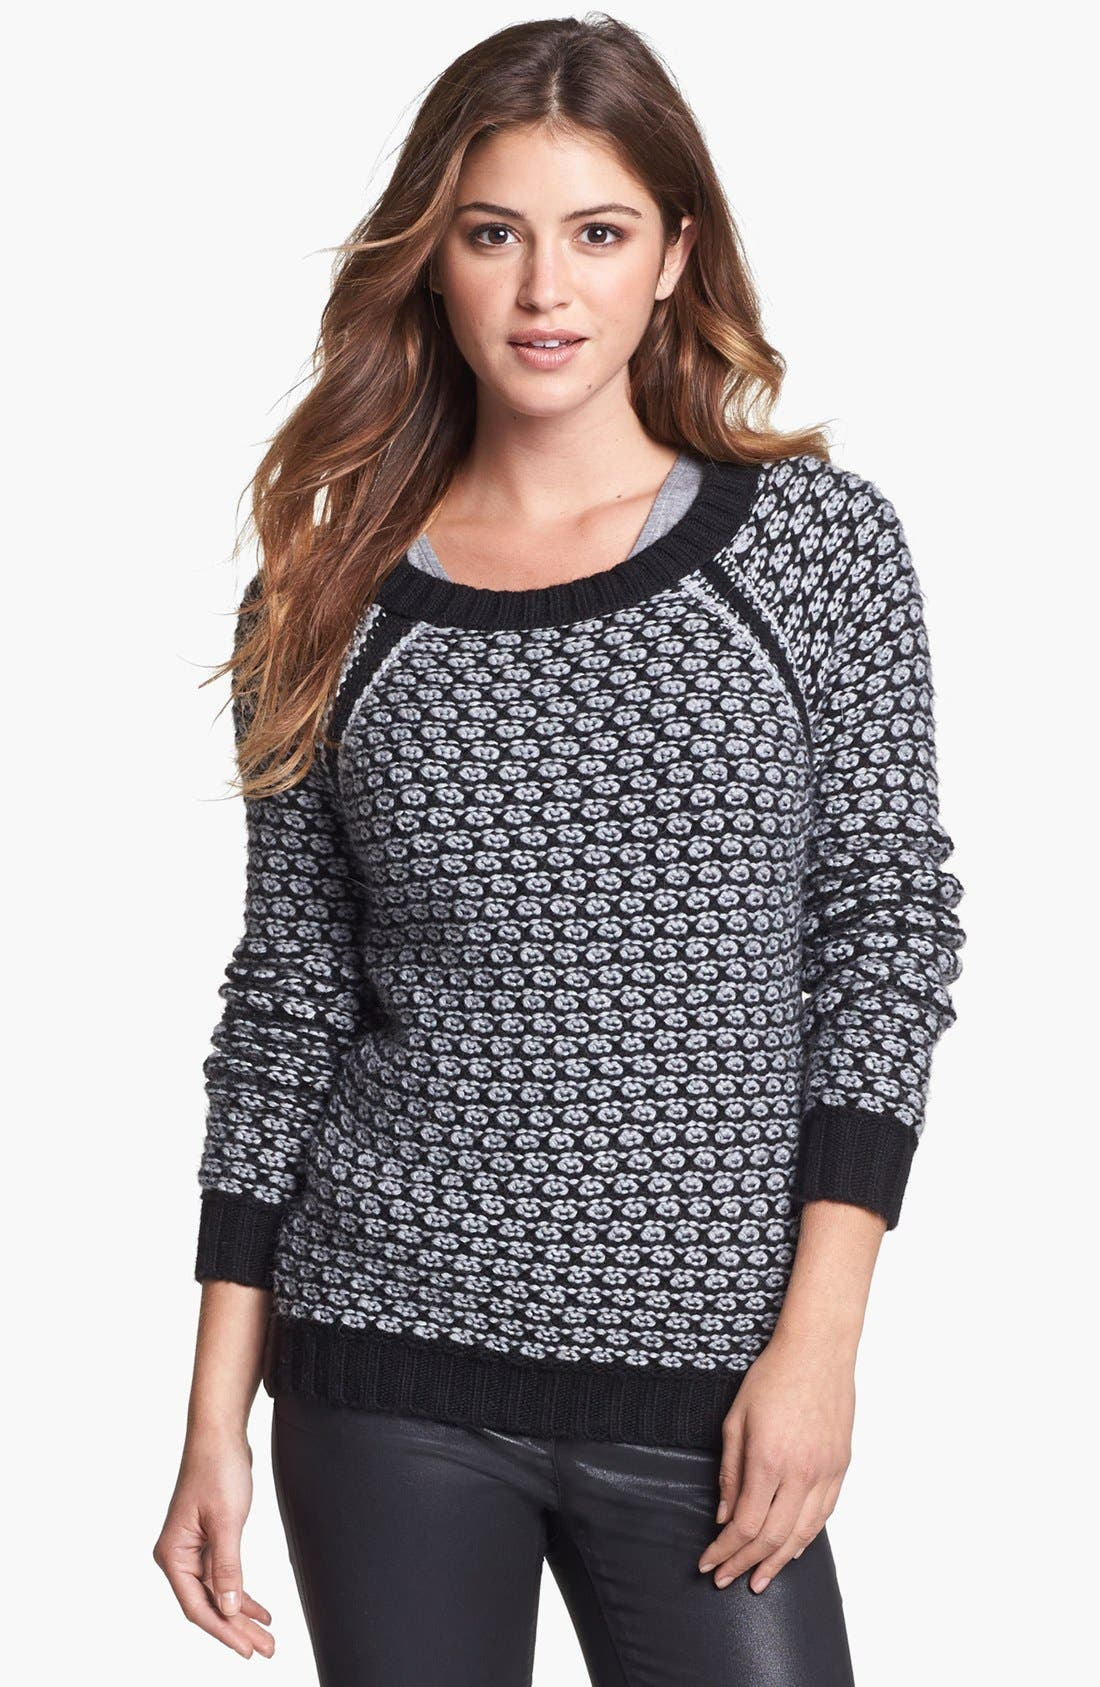 Alternate Image 1 Selected - Two by Vince Camuto Side Zip Honeycomb Knit Sweater